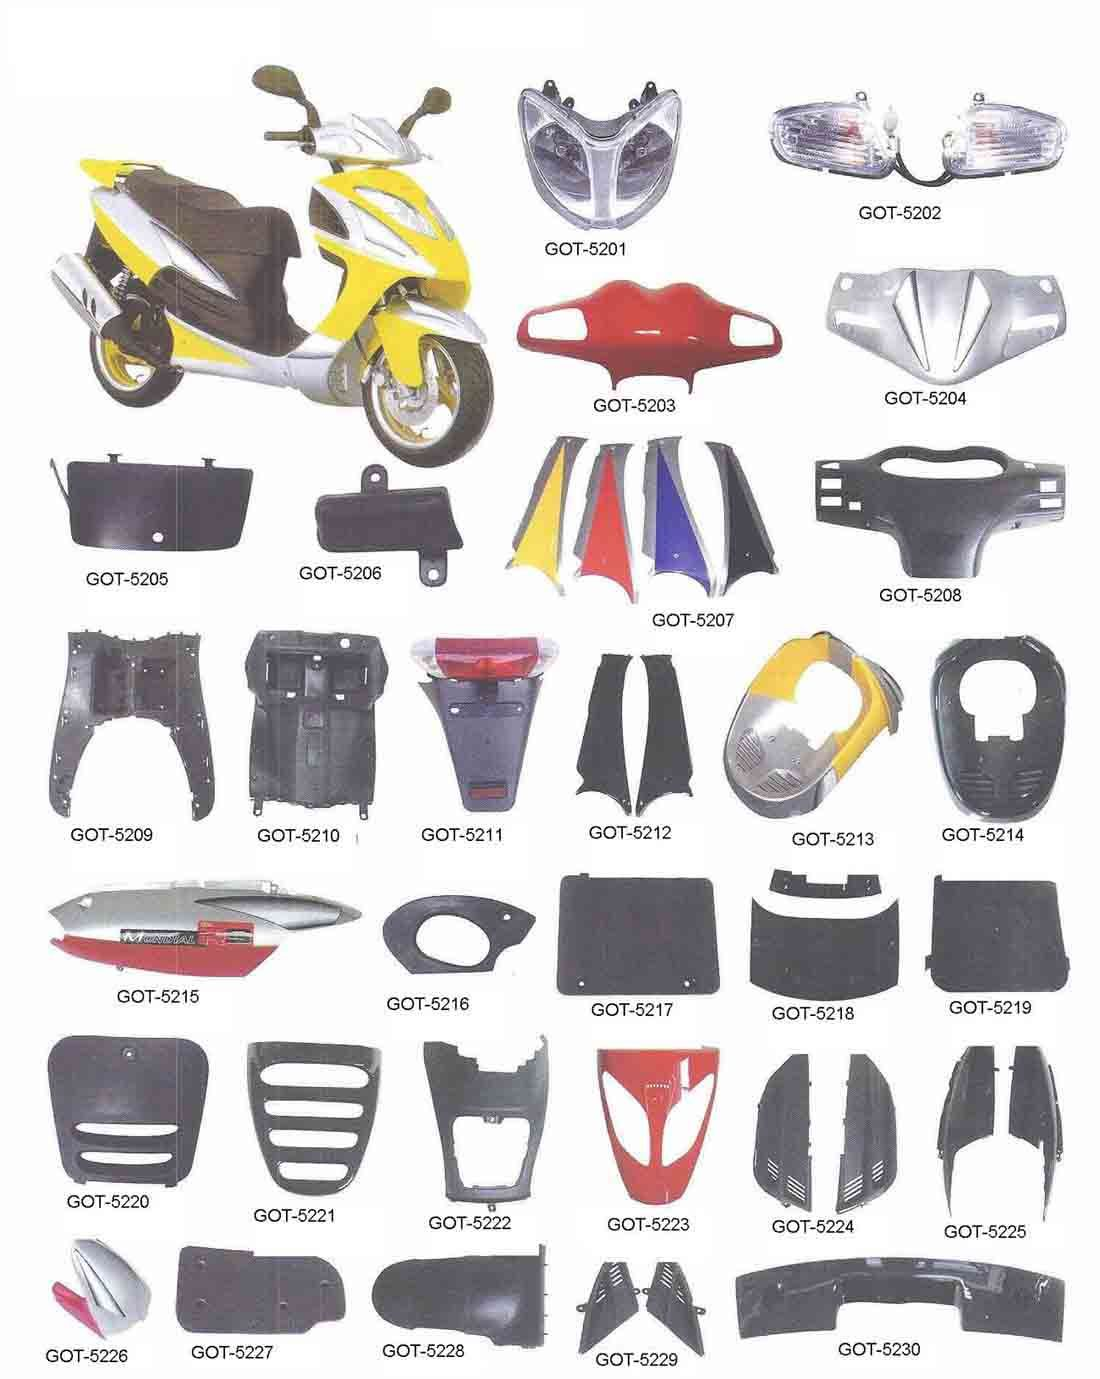 How to buying motorcycle parts from China